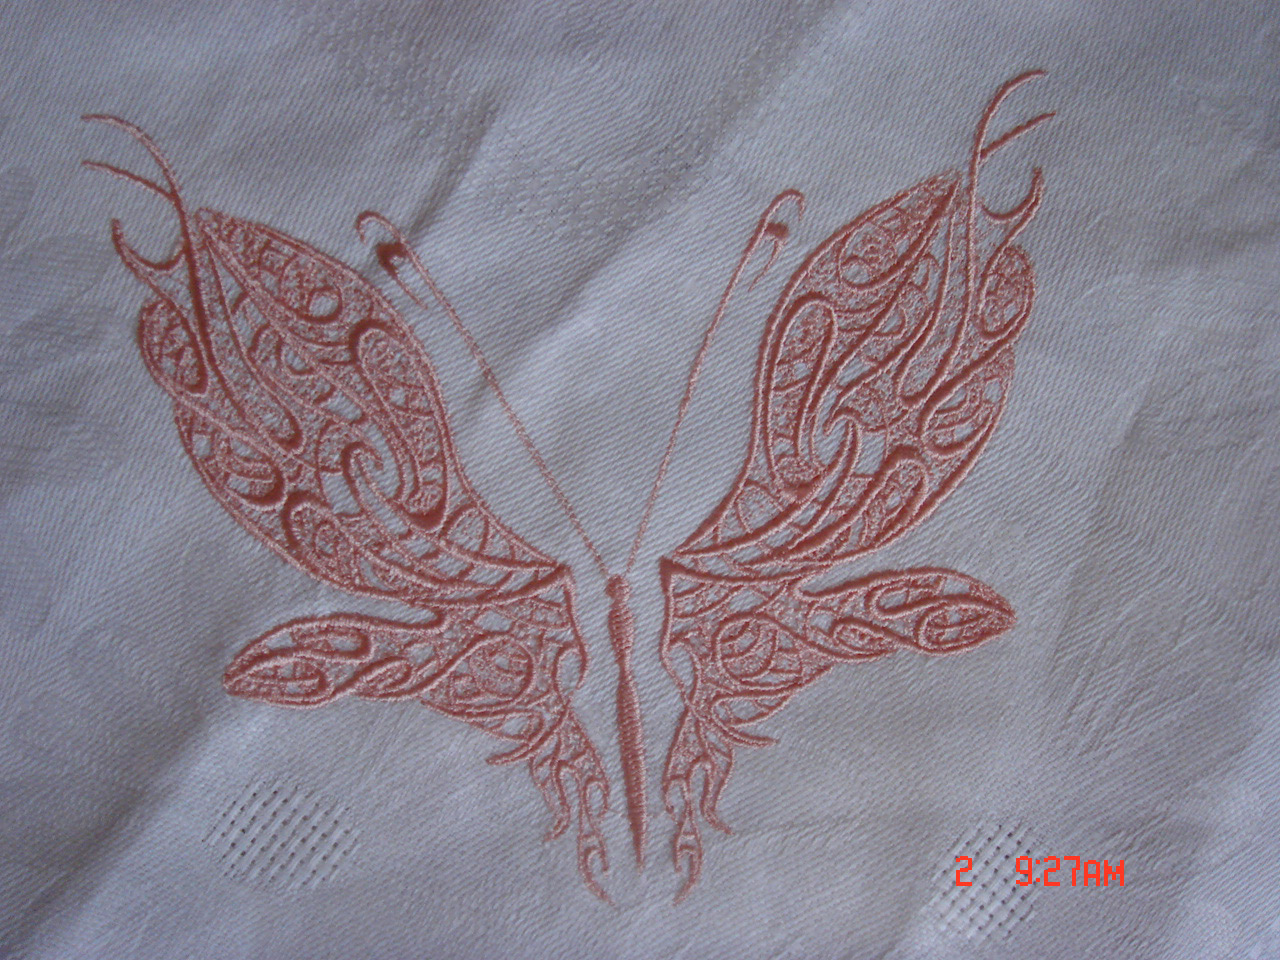 Queen forests design on table cloth embroidered